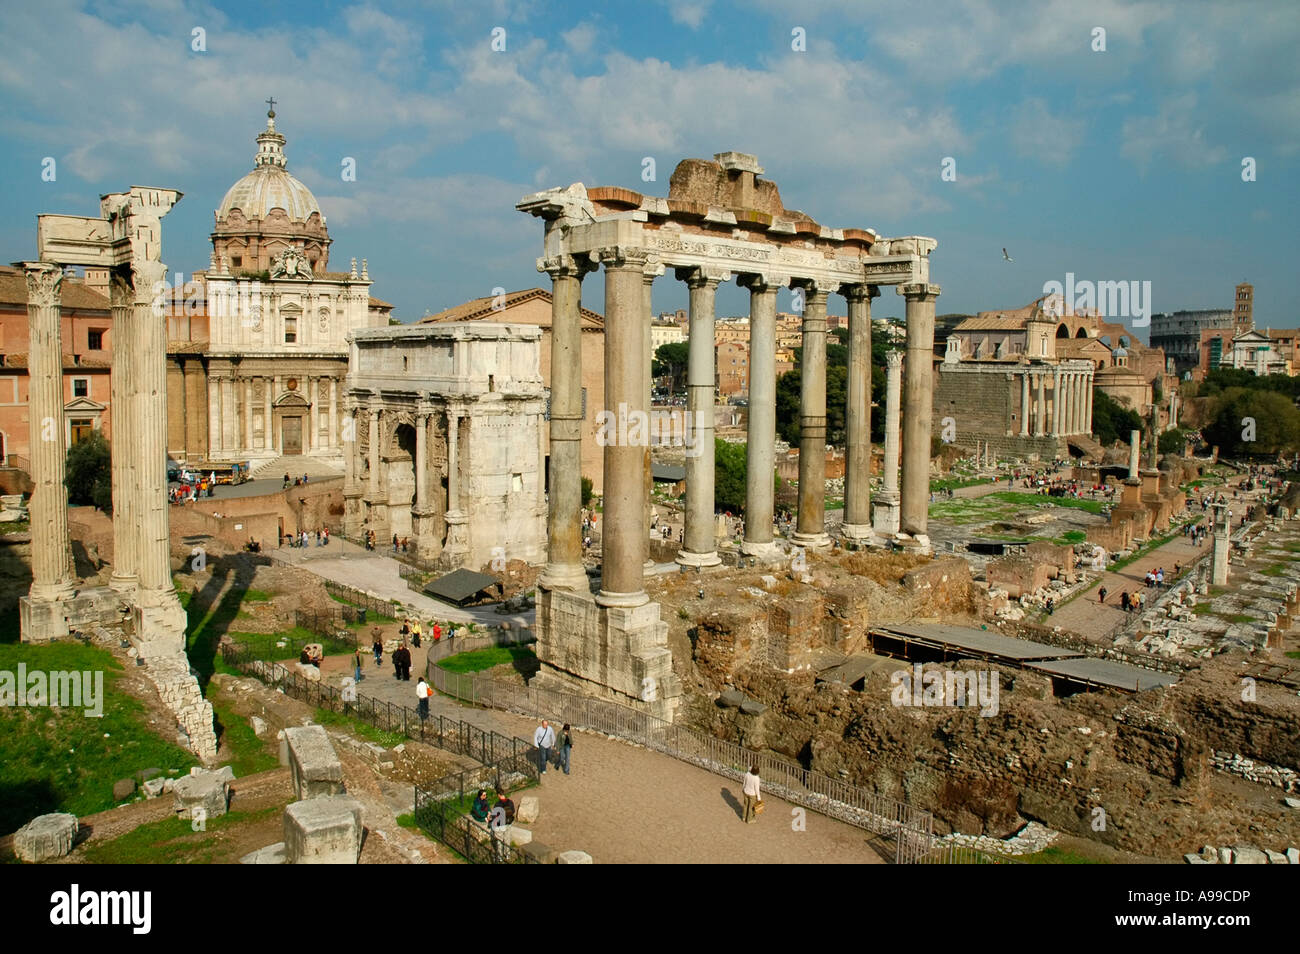 Ancient Rome - Stock Image